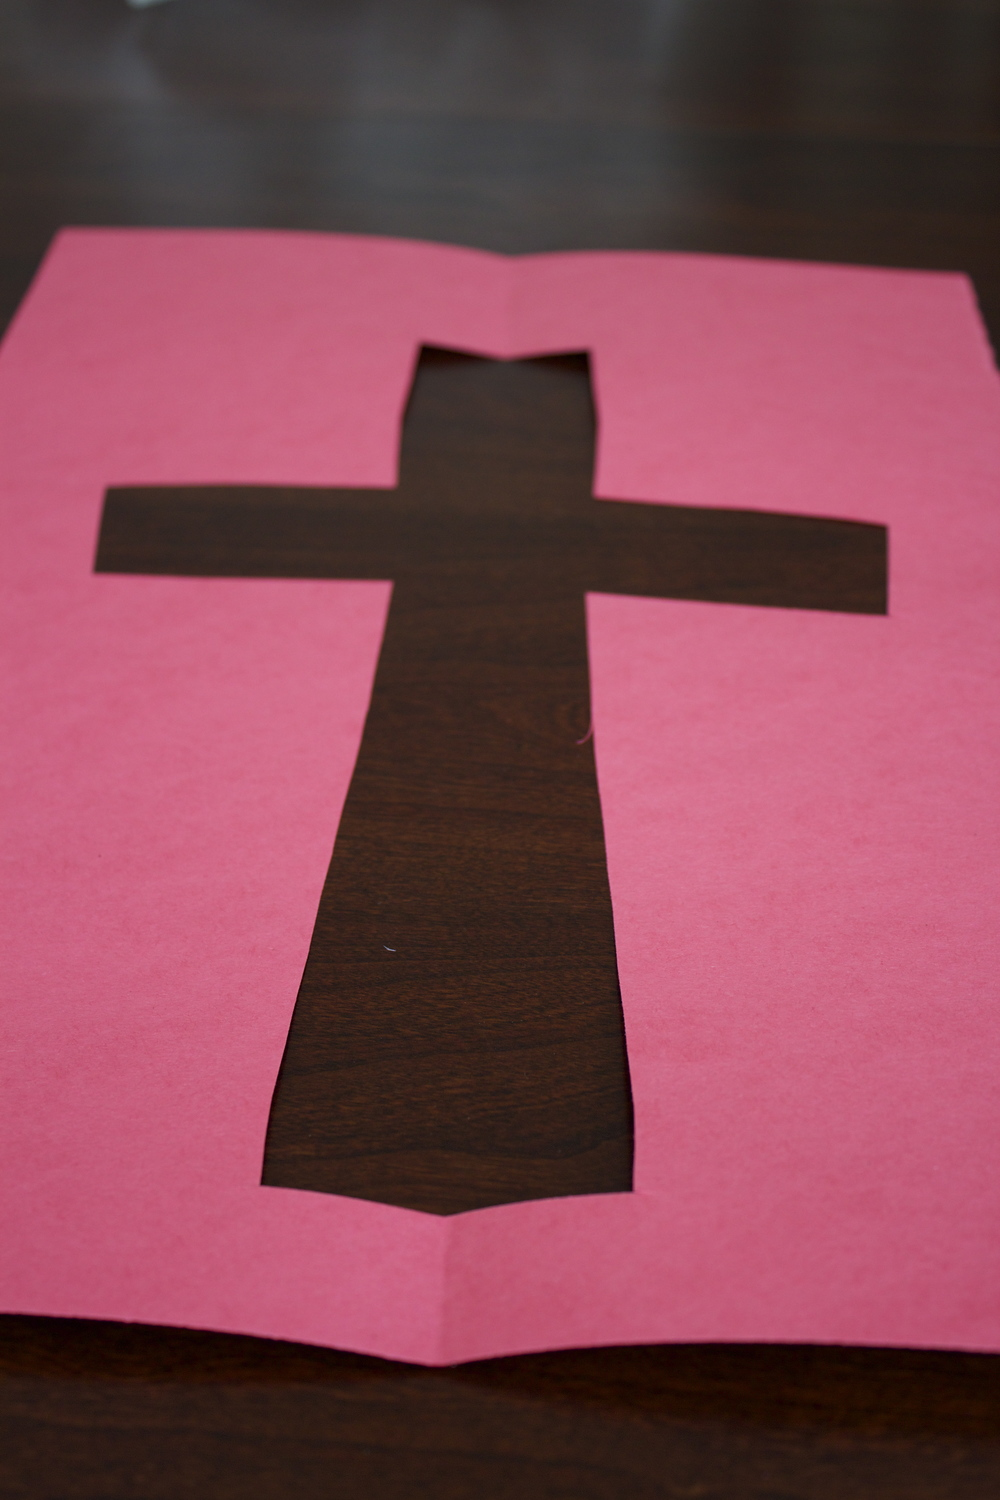 Cross cutout of the construction paper